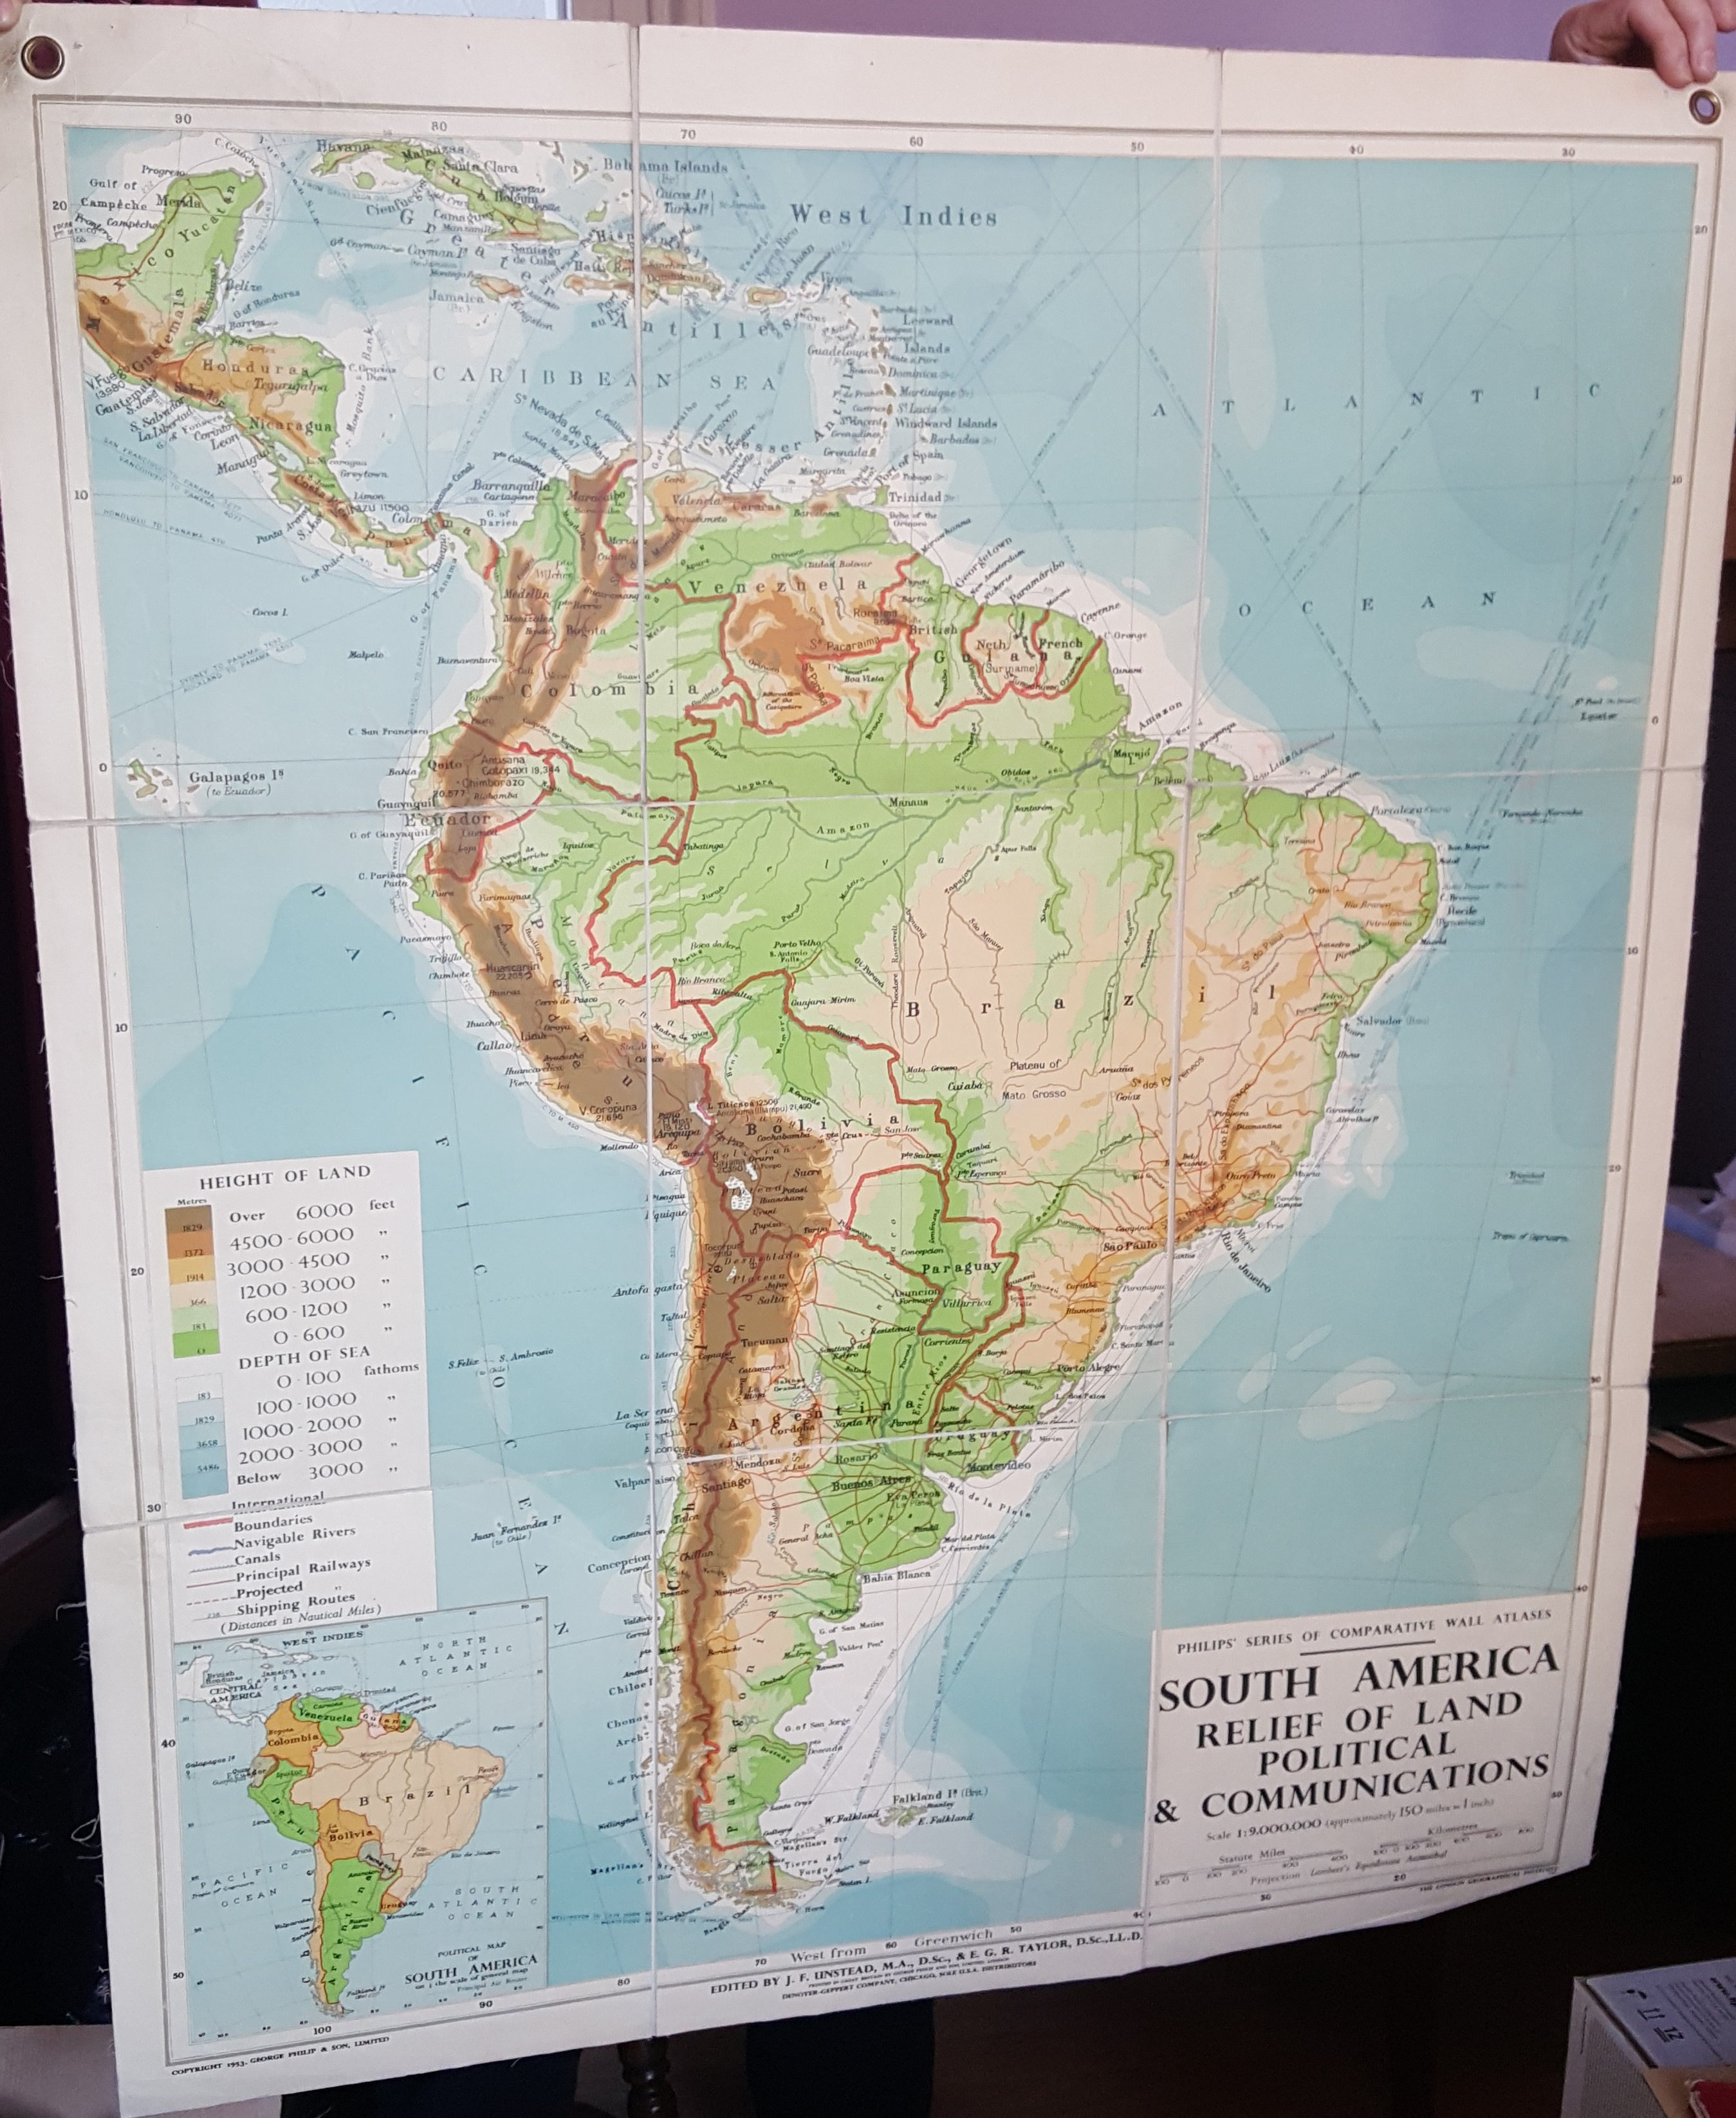 Philips' Comparative Series of Smaller School Maps - South America - Physical and Political.